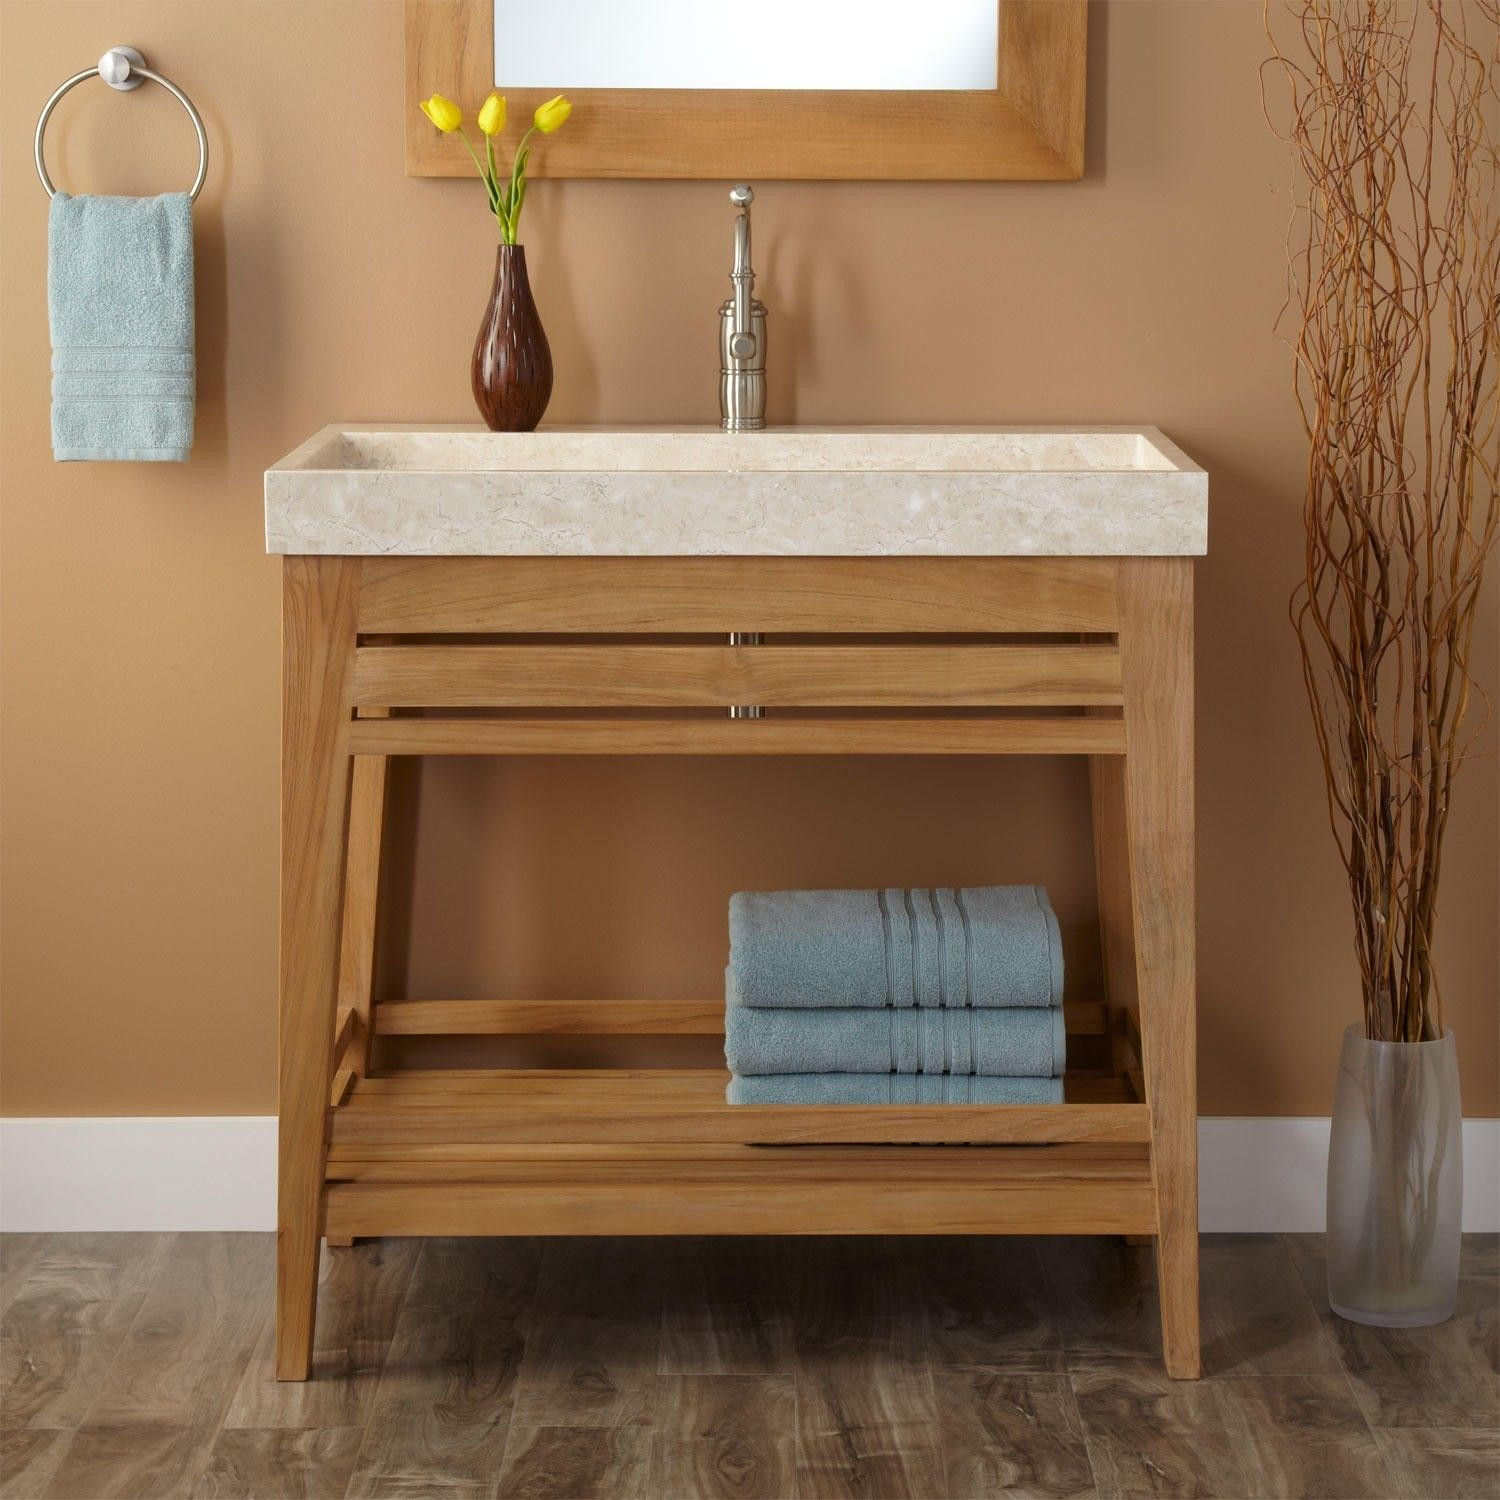 Modern Natural Wooden Open Shelves Vanity With Marble Trough Sink Of Charming Open Shelf Bathroom Vanity Design Ideas And Bathroom Furniture Count Ikea Storage